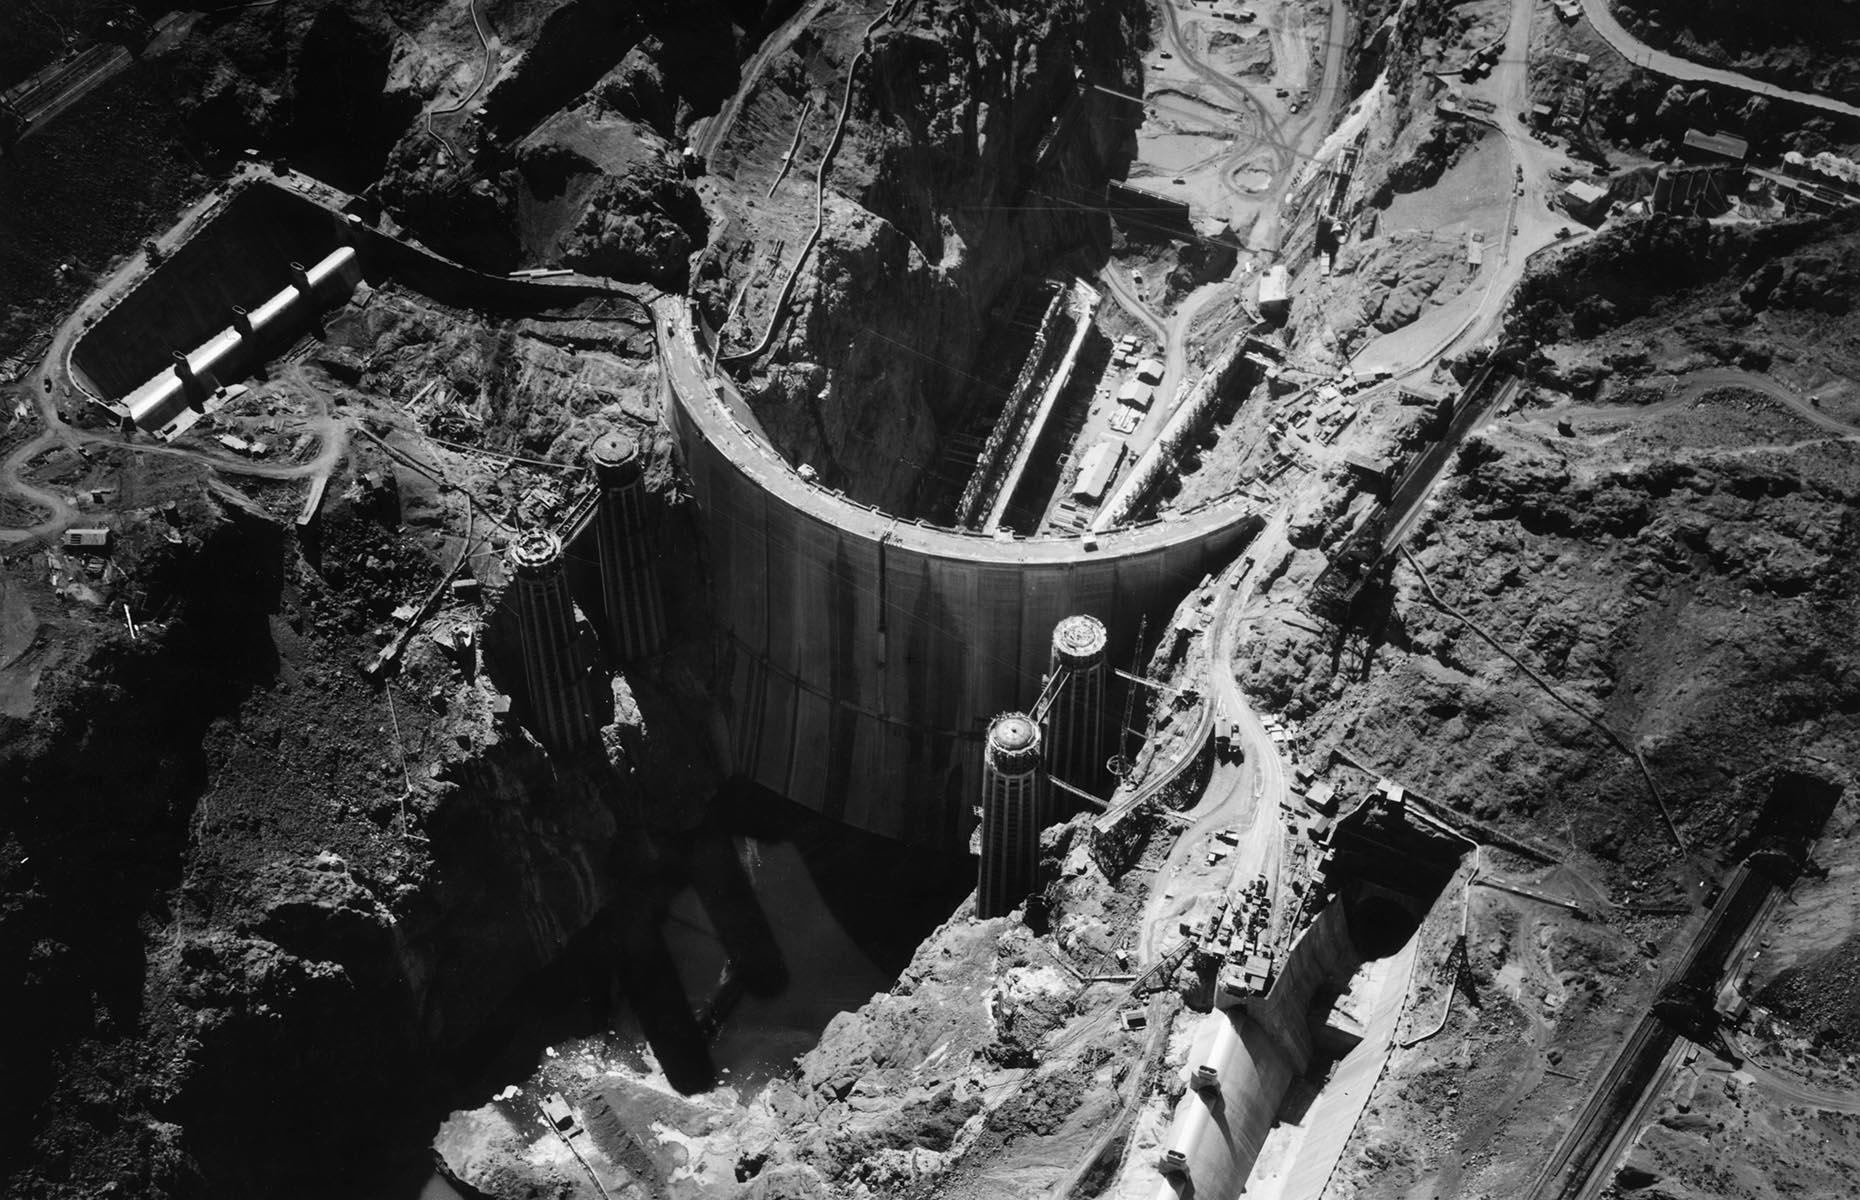 Slide 9 of 34: The construction of the Hoover Dam is still probably the most significant development in the city's history. Its construction brought in new residents (and gamblers) and it gave the valley's economy a much-needed boost during the Great Depression. It also provided two key commodities in ample supply – water and electricity. Finished in 1936, it's still one of the largest and most ambitious public works ever undertaken by the federal government.